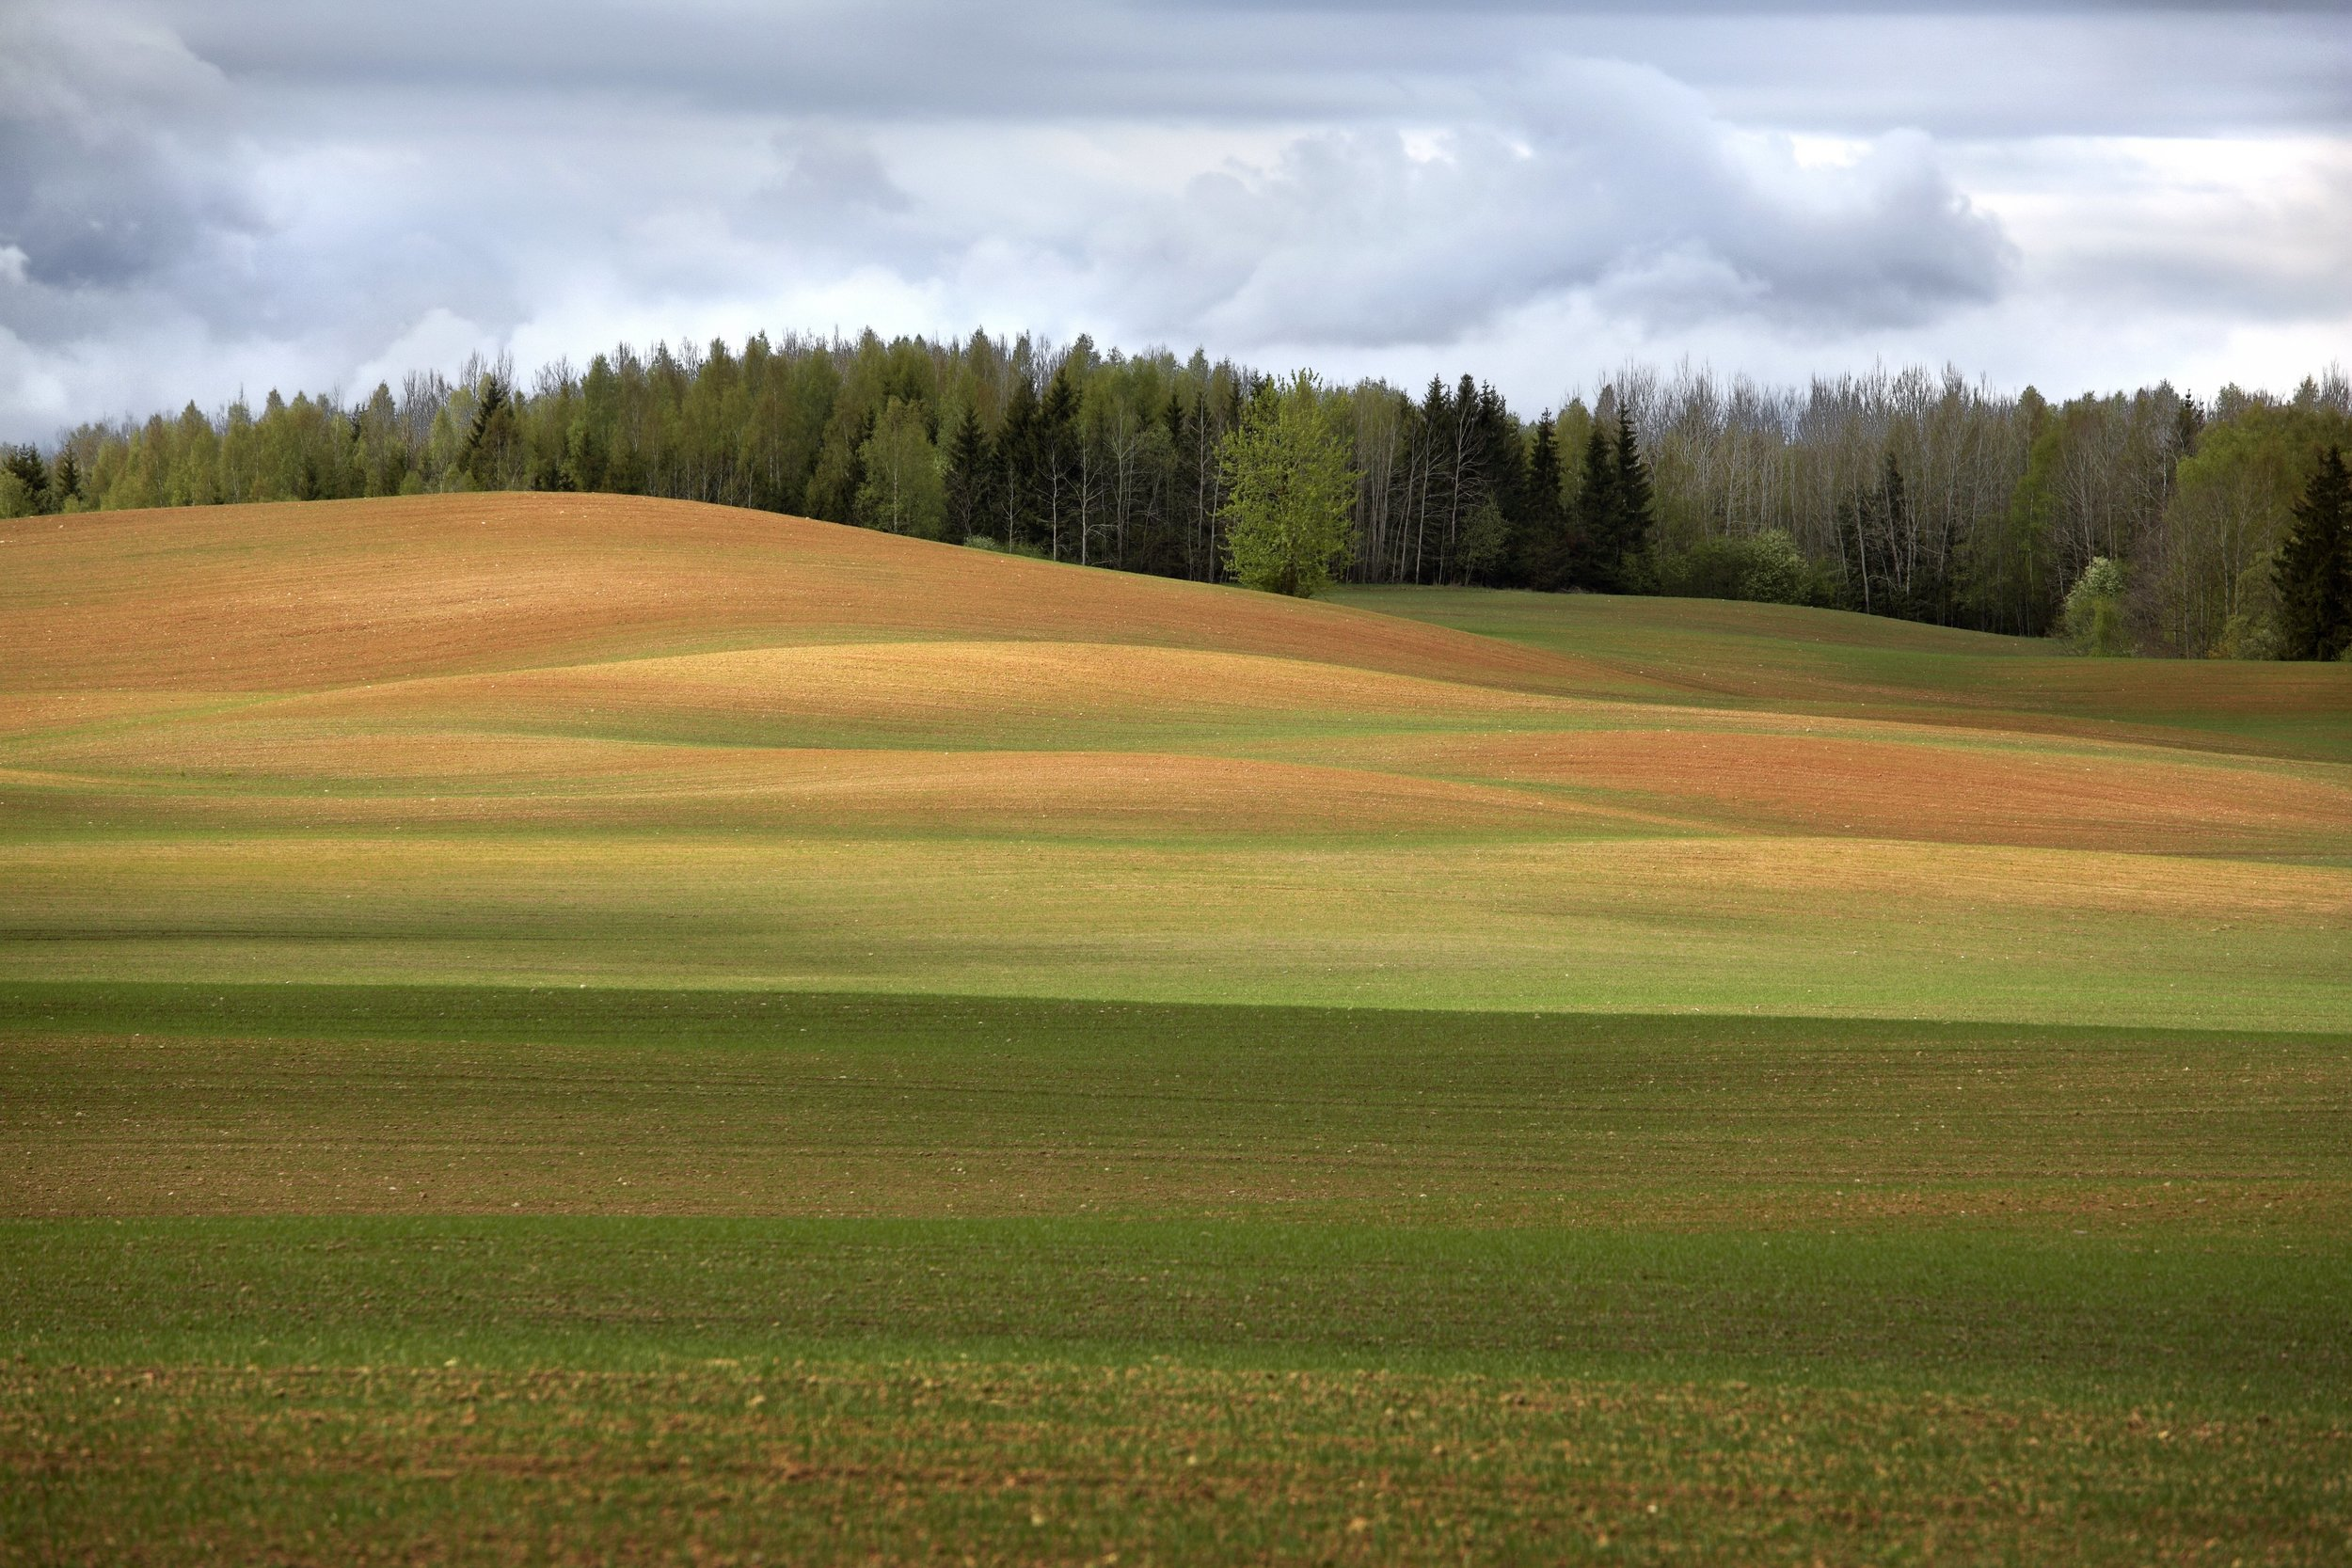 IU14_Colours_of_Latvian_countryside_I_Urtans.jpeg